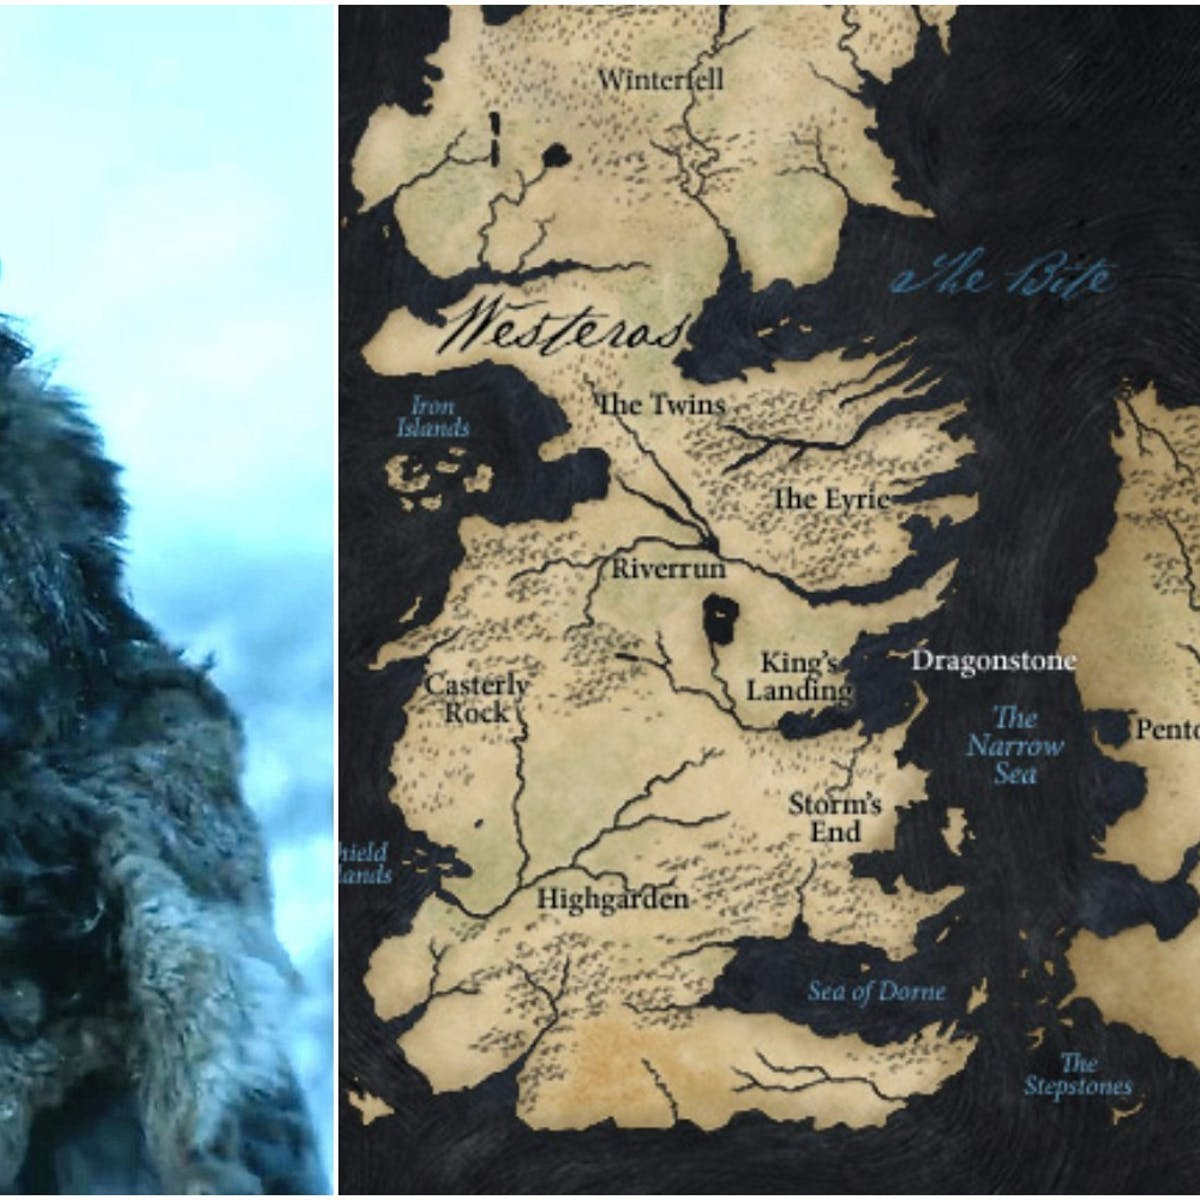 Wild 'Game of Thrones' Theory Connects Westeros and Essos on ... on game of thrones yi ti, game of thrones wallpaper 1280x1024, game of thrones poster, official map of essos, game of thrones sothoryos, game of thrones maps pdf, hd map of westeros essos, game of thrones family tree house, game of thrones king's landing minecraft, game of thrones all books, game of thrones 4d puzzle, game of thrones maps and families, game of thrones city braavos, game of thrones banners, game of thrones qarth, game of thrones house tyrell, game of thrones diagram, game of thrones maps hbo,